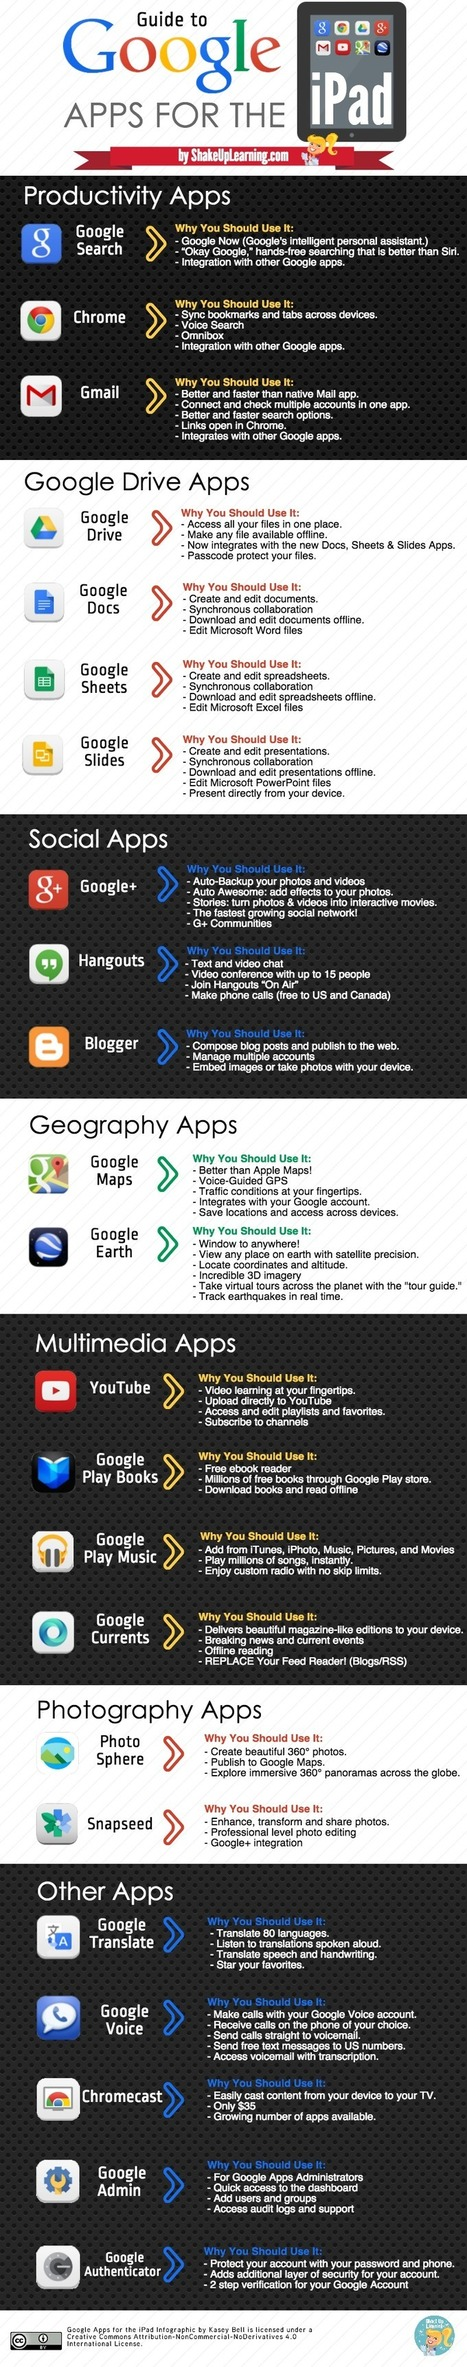 Guide to Google Apps for the iPad - Infographic | iPad Recommended Educational App Lists | Scoop.it